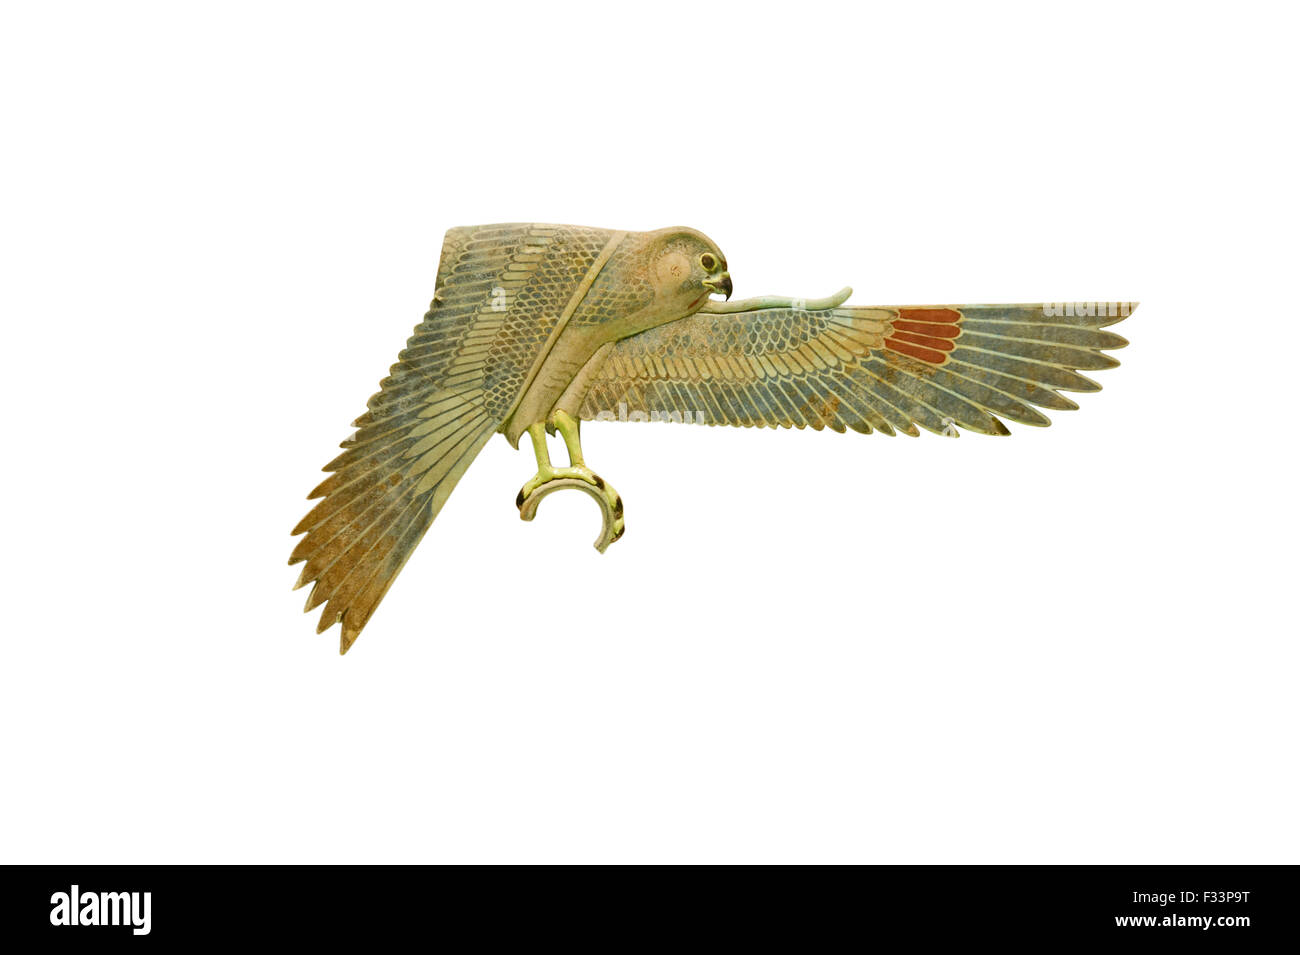 Inlay in the form of a falcon from  a shrine from ancient Egypt from the Ptolemaic Empire in Egypt during the Hellenistic - Stock Image